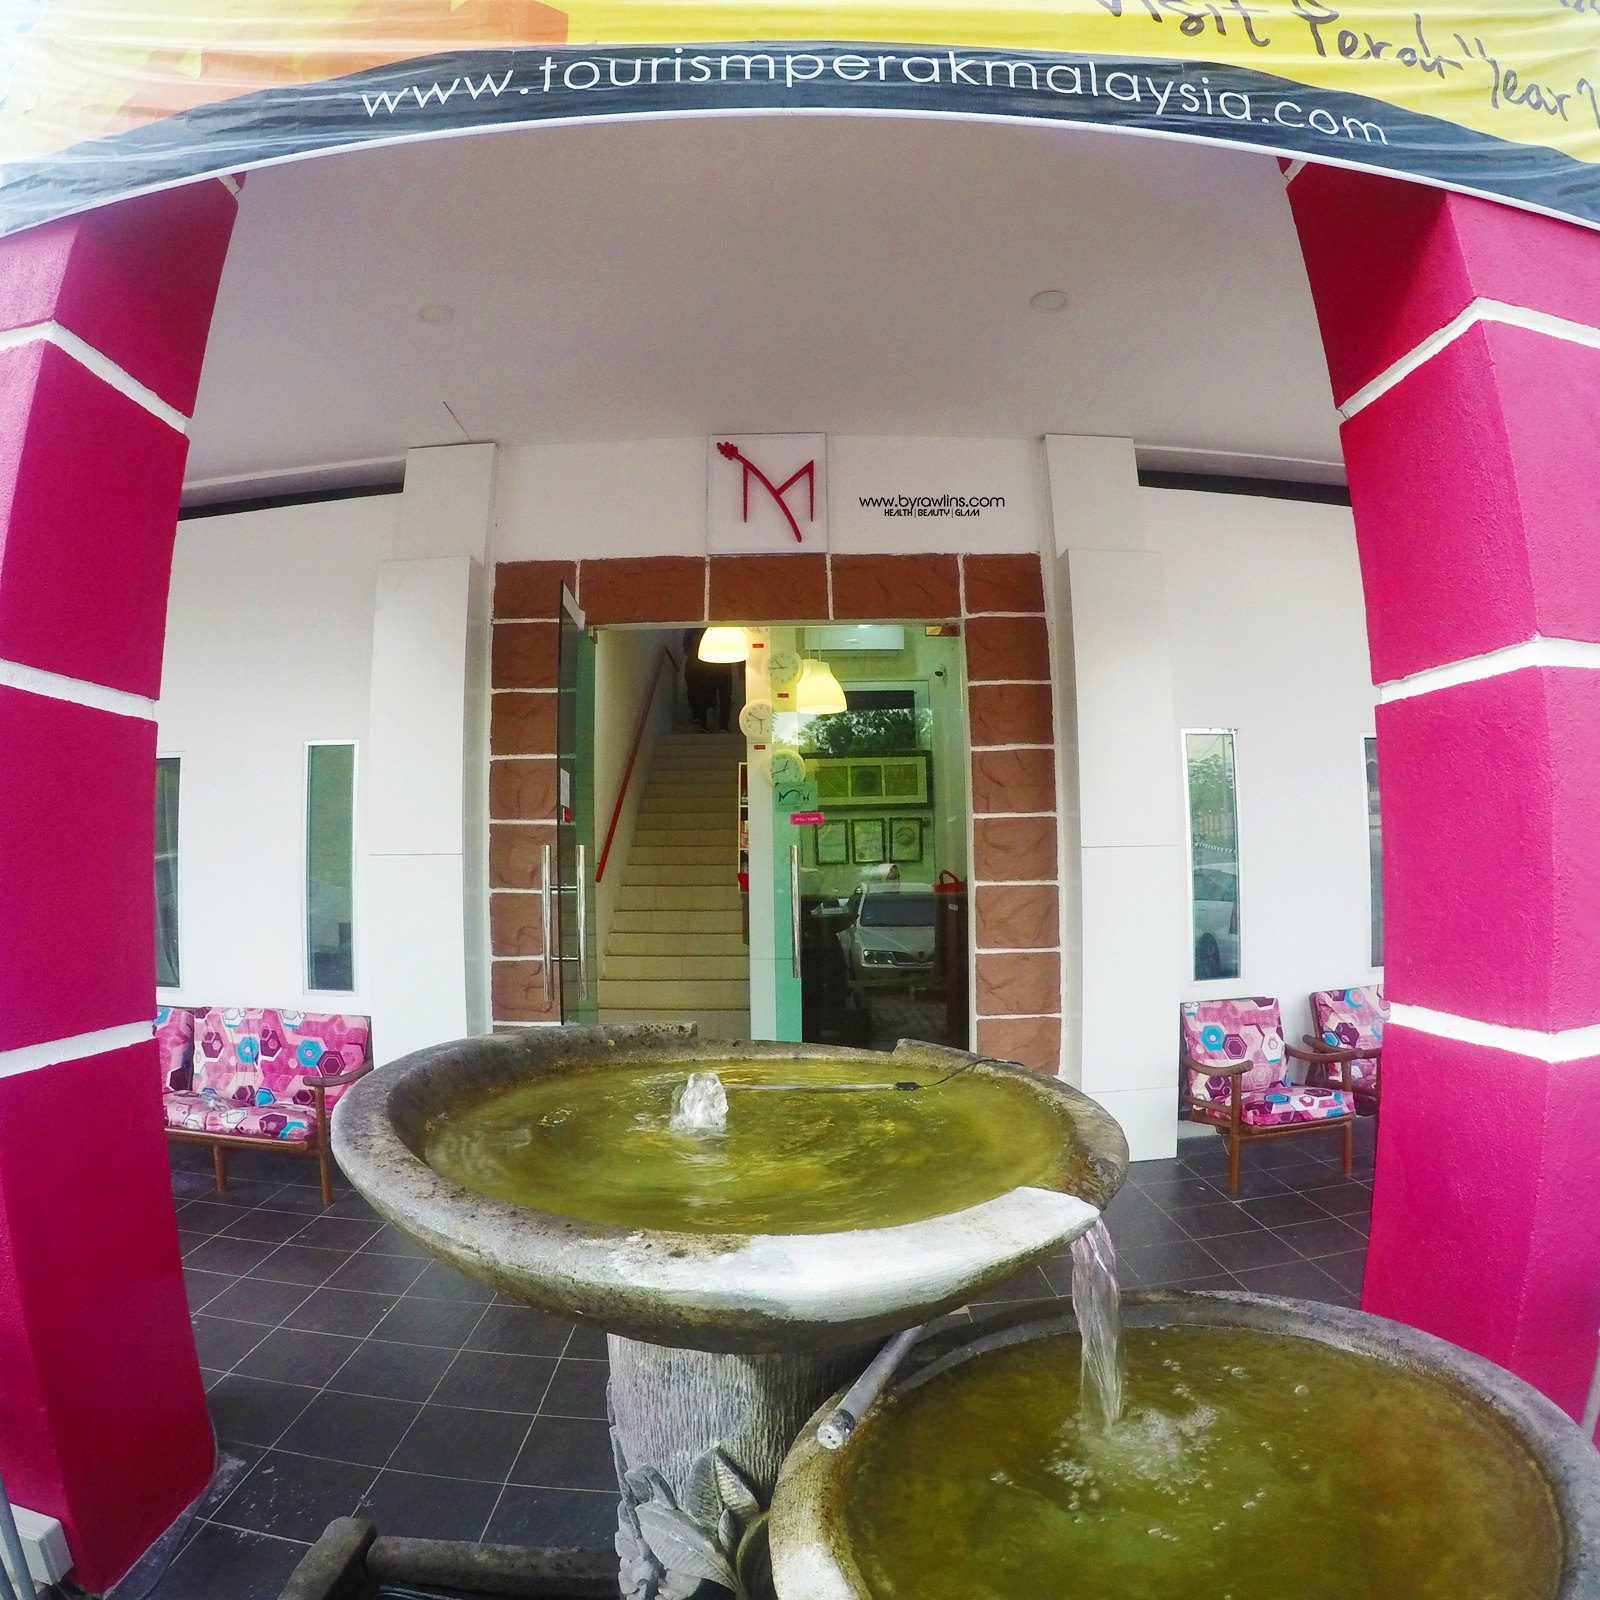 hotel in Ipoh, M Motel at Meru, Movie Animation Park Studios, Perak Tourism, Rawlins Travels, Selangor Tourism Association, Sunway Lost World of Tambun, Destination Perak,